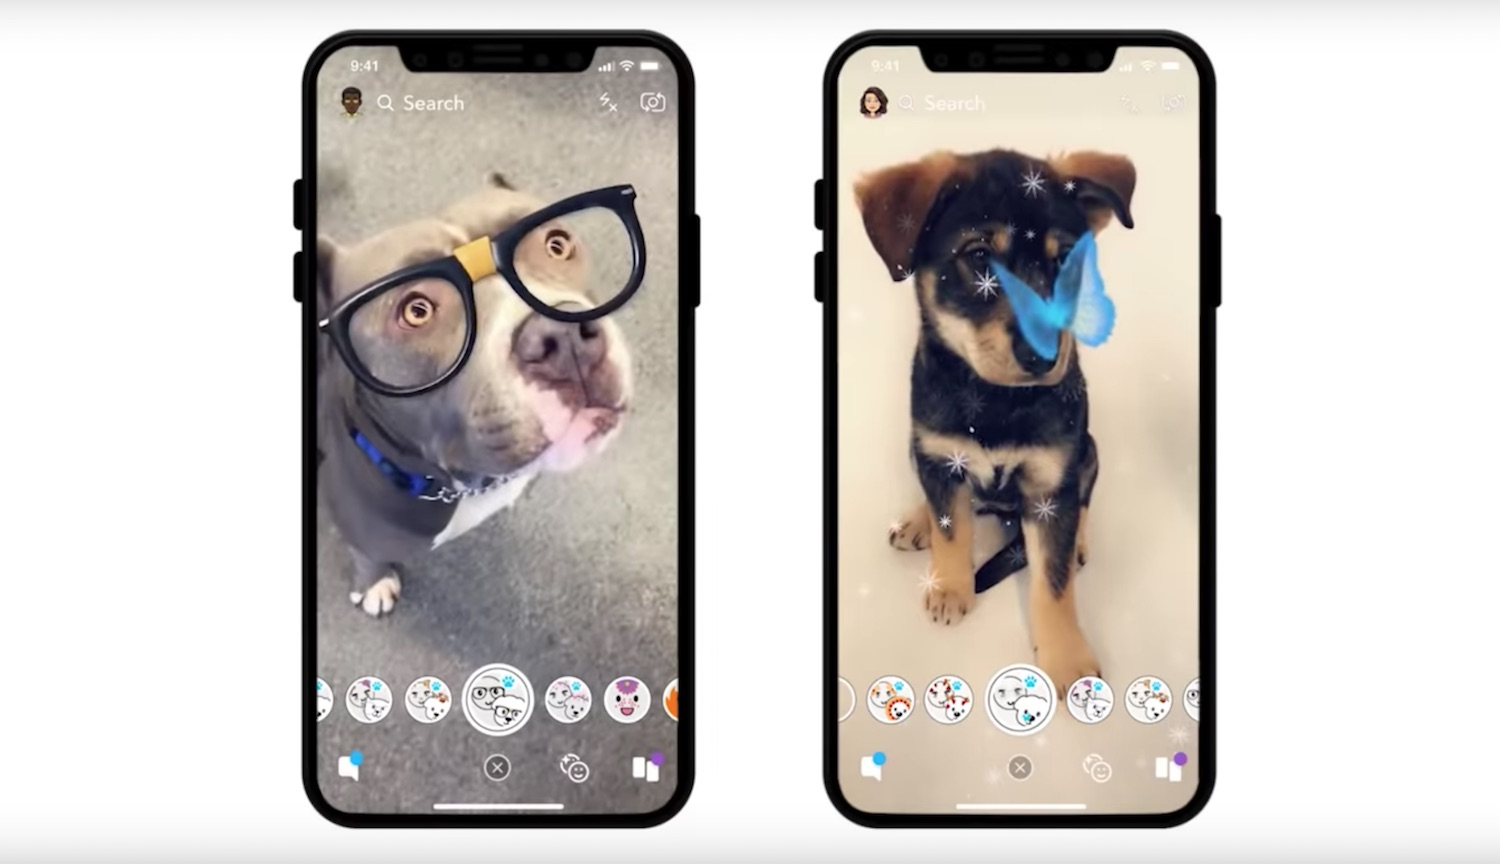 Snapchat Unveils Lenses for Dogs - How to Use Them | Tom's Guide